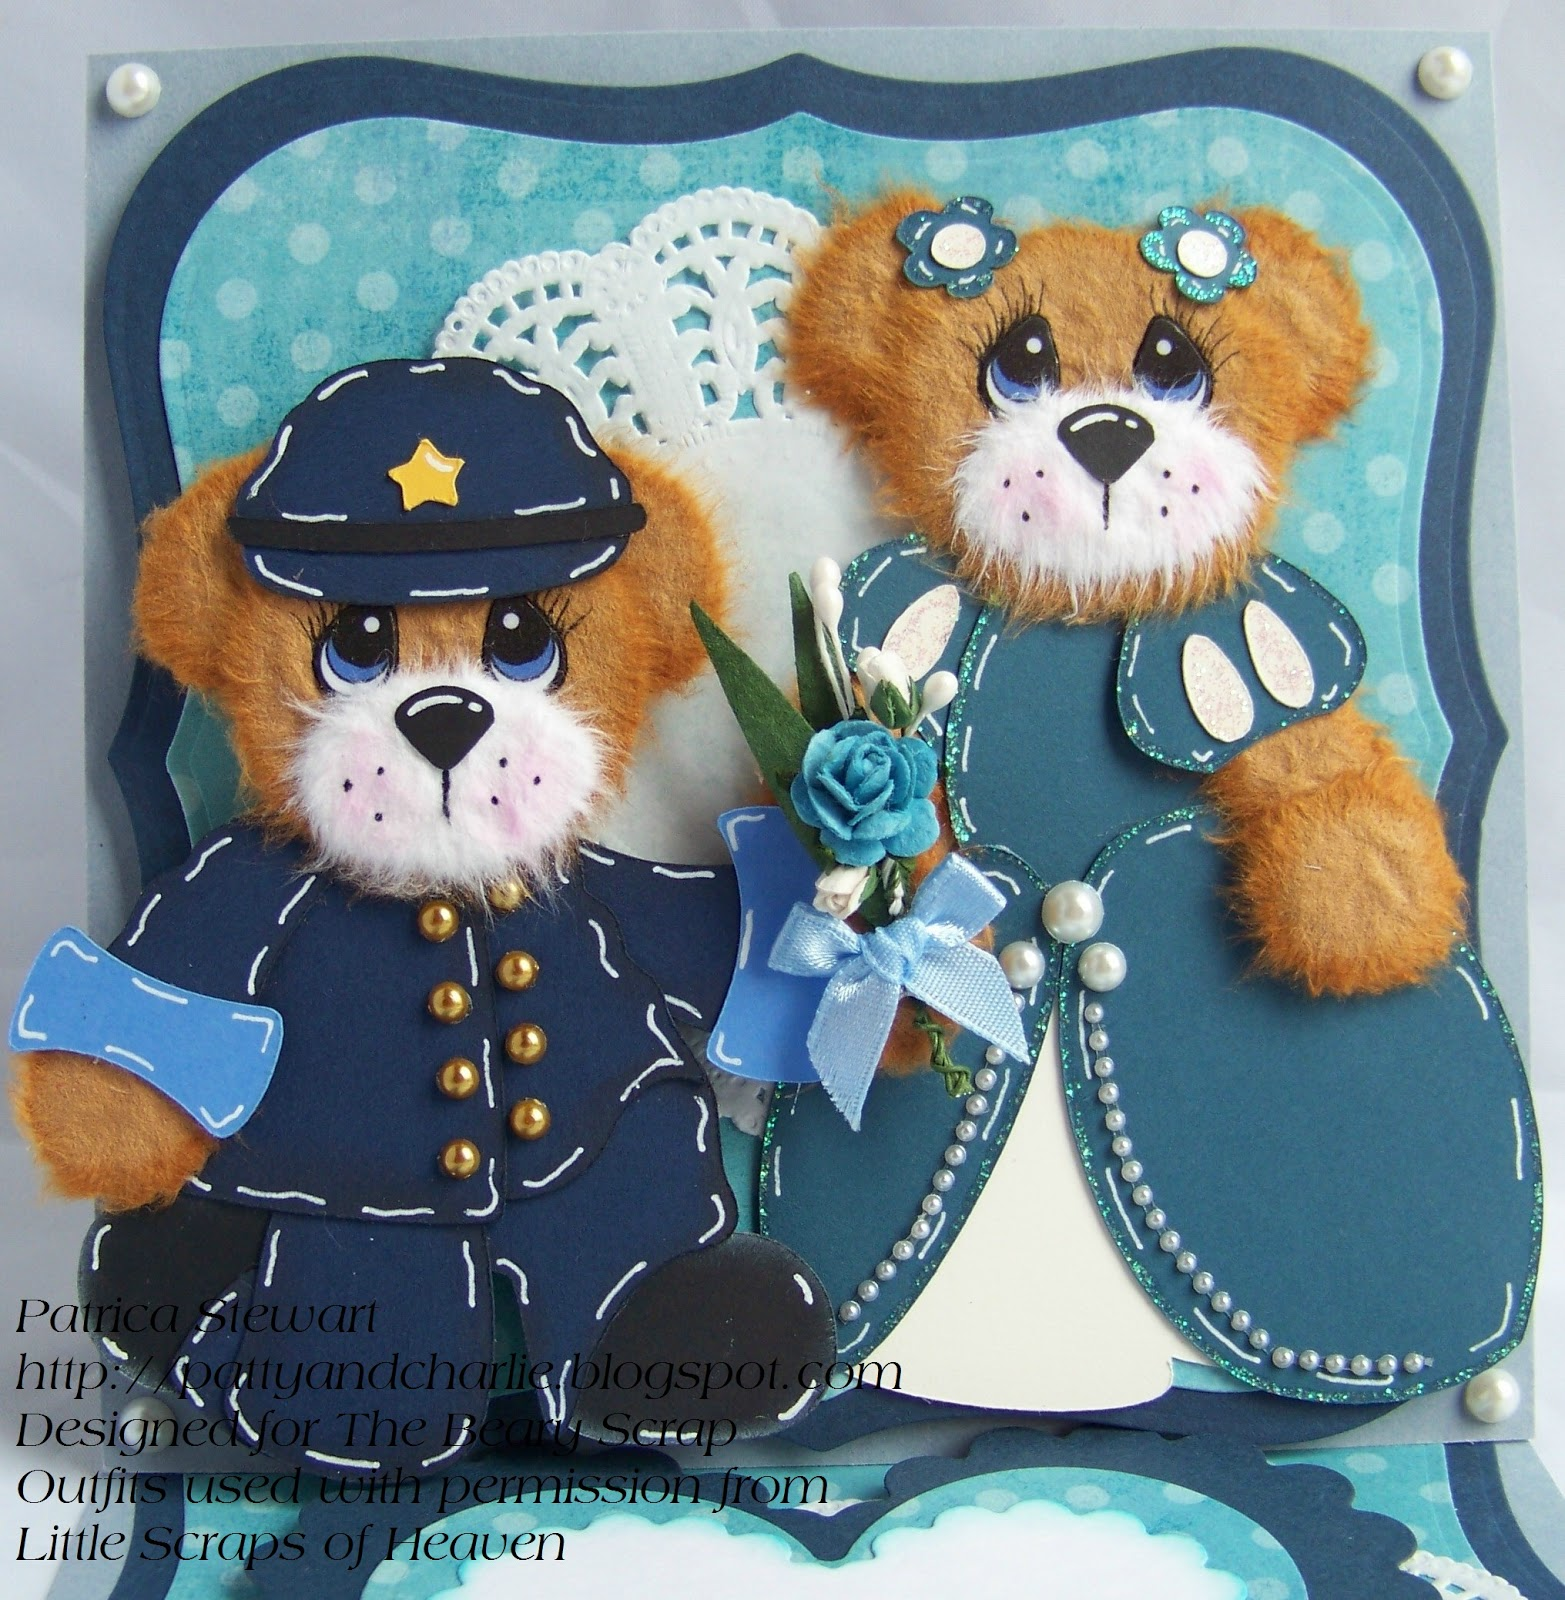 The beary scrap design team and challenge blog winter The color blue makes you feel